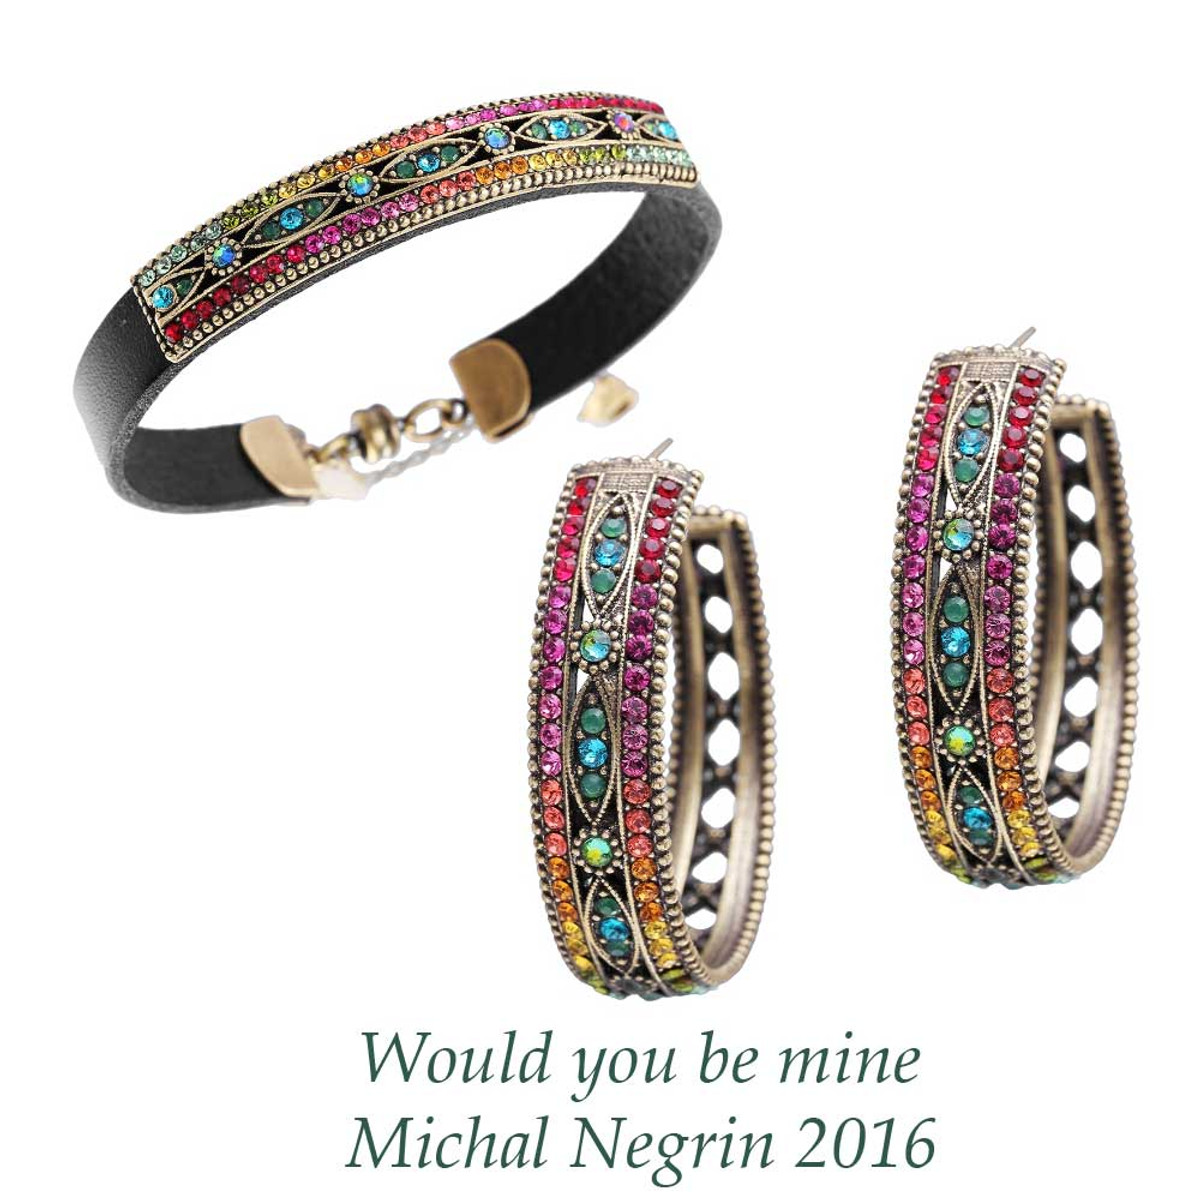 Michal Negrin Would you be Mine Set